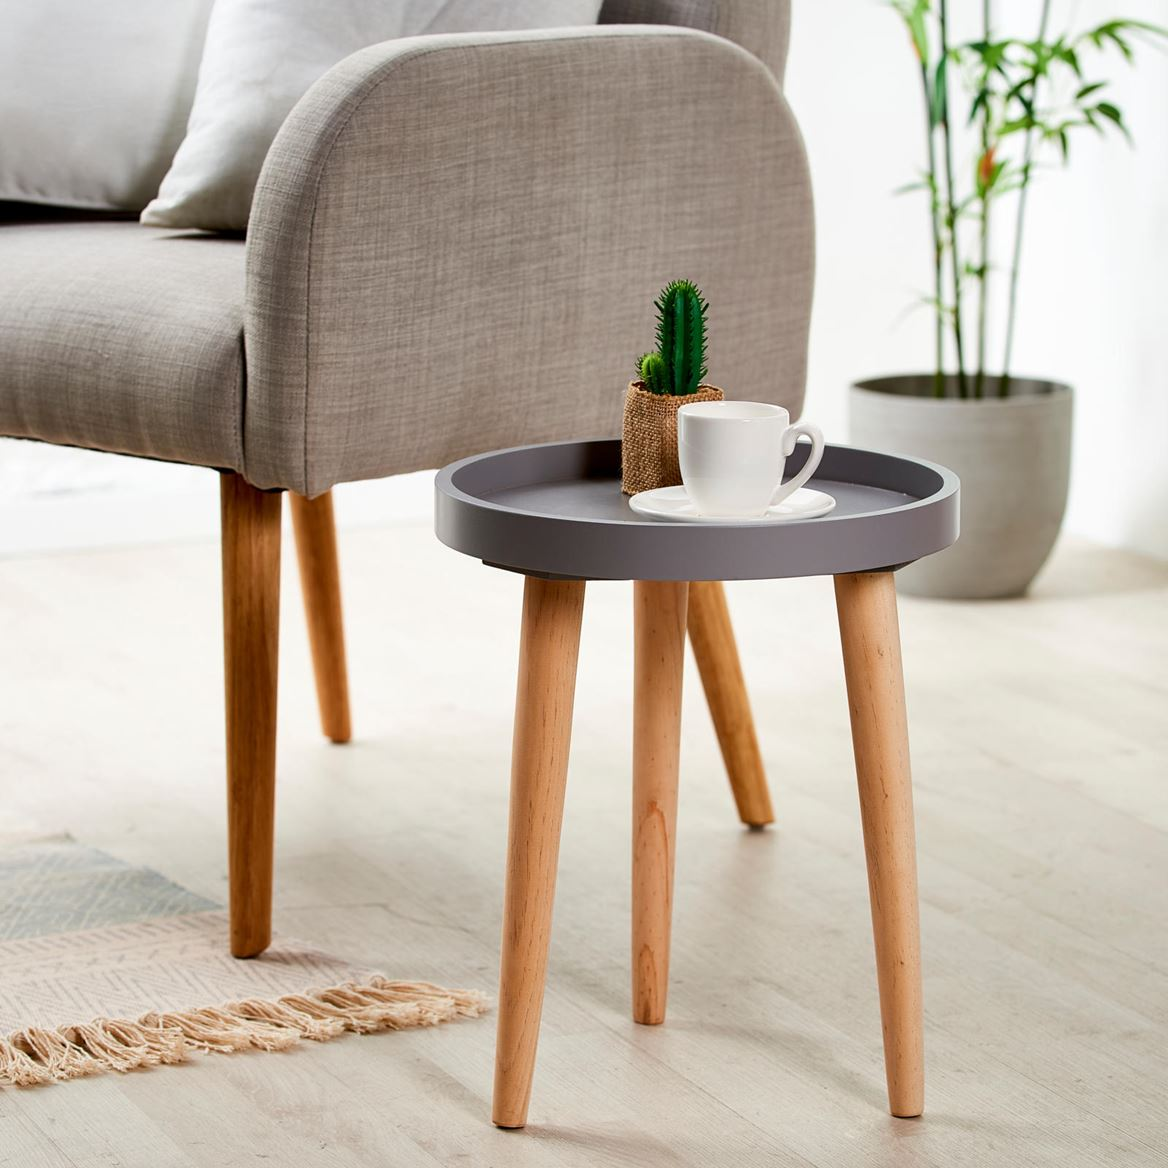 ANCONA Table d'appoint_584038_10.jpg